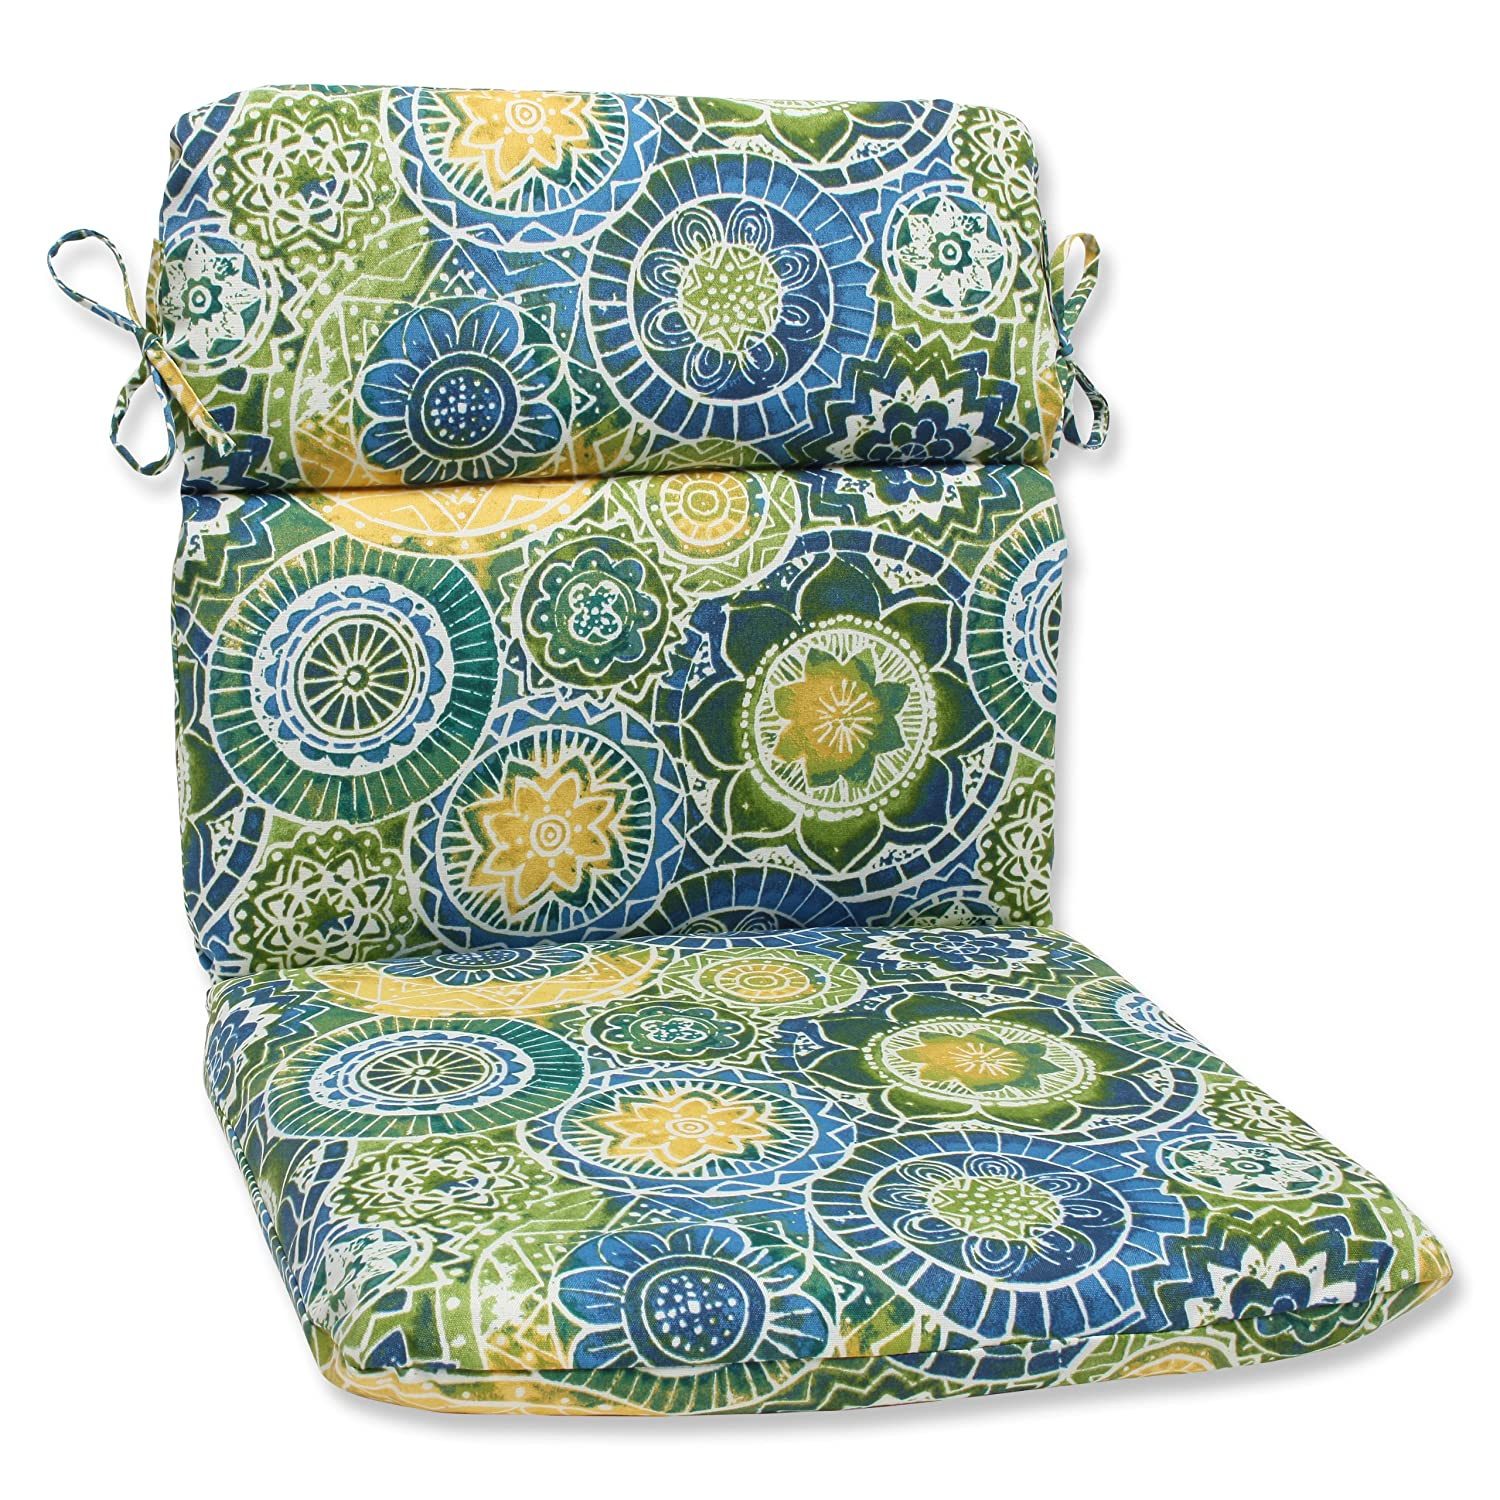 Pillow Perfect Outdoor Omnia Lagoon Rounded Corners Chair Cushion